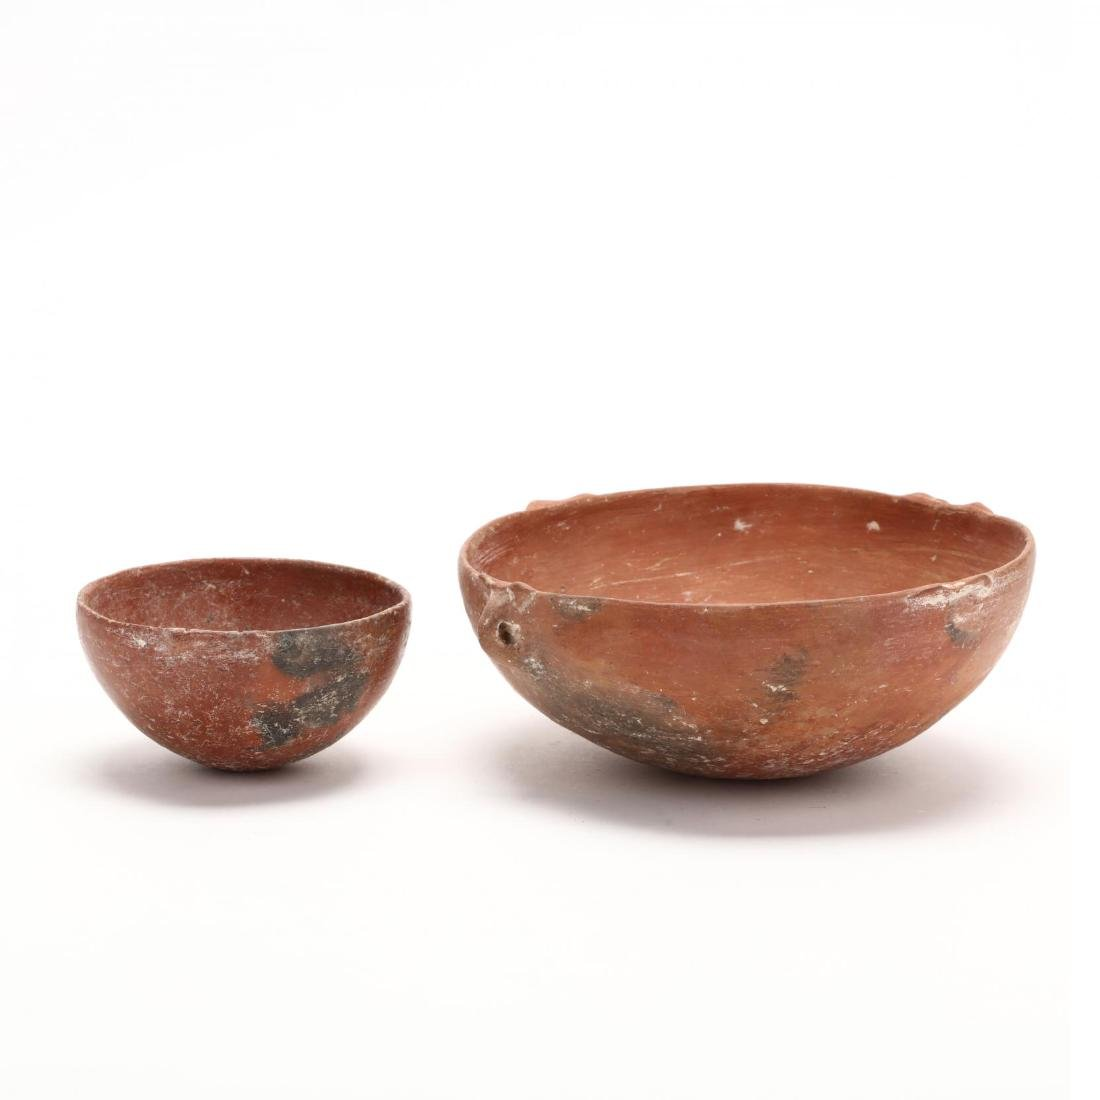 Two Cypriot Early Bronze Age Polished Red Ware Bowls - 4